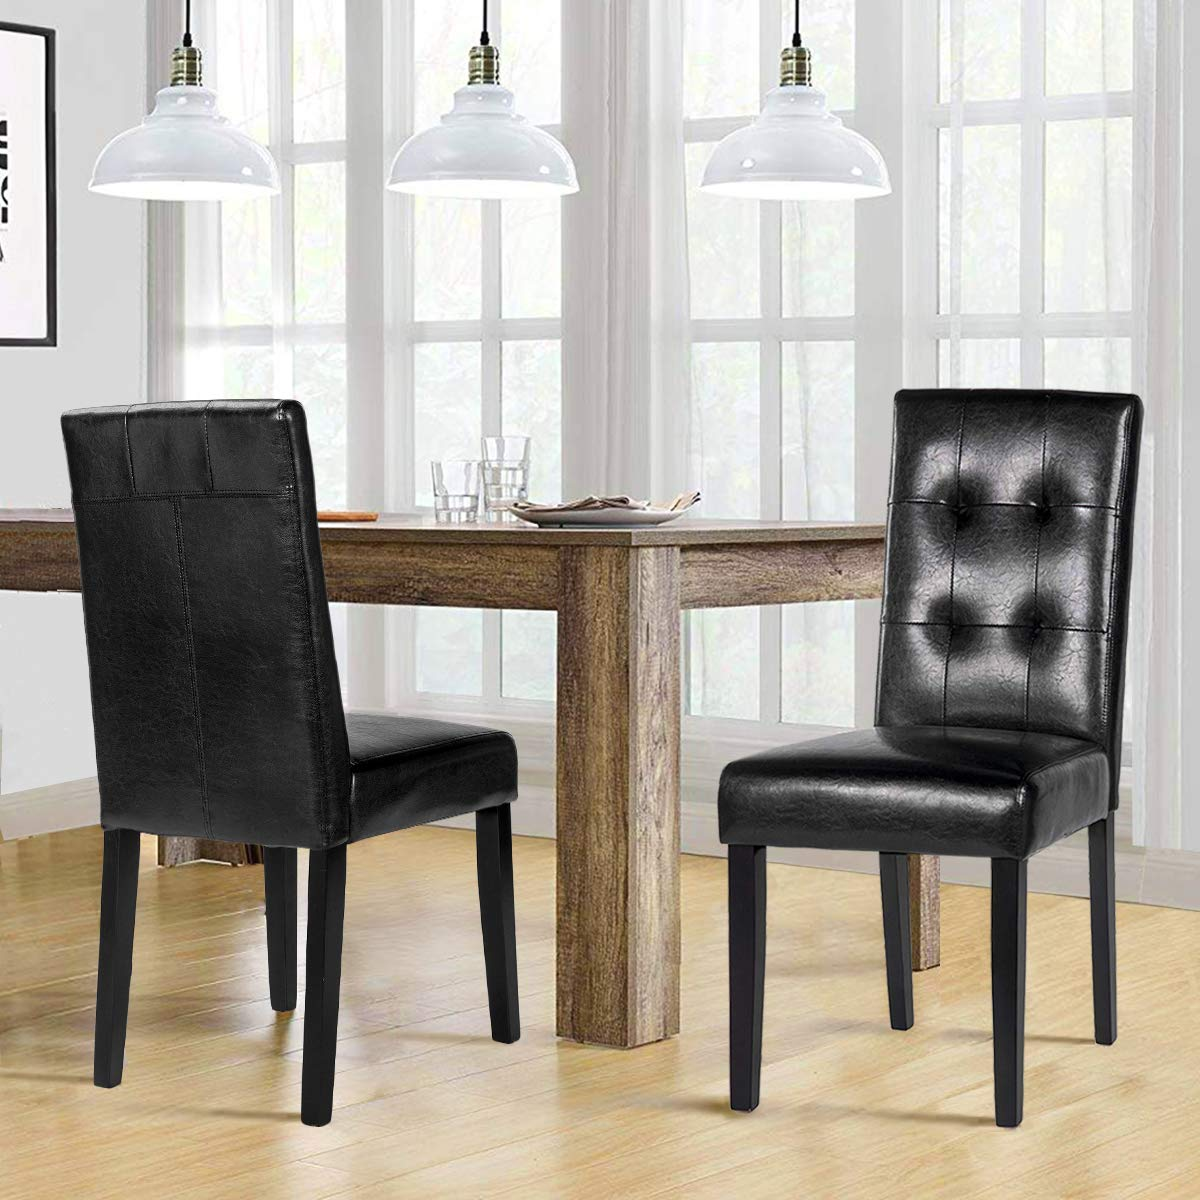 Merax Black PU Dining Chair Leisure Chair with Solid Wood Legs, Set of 2